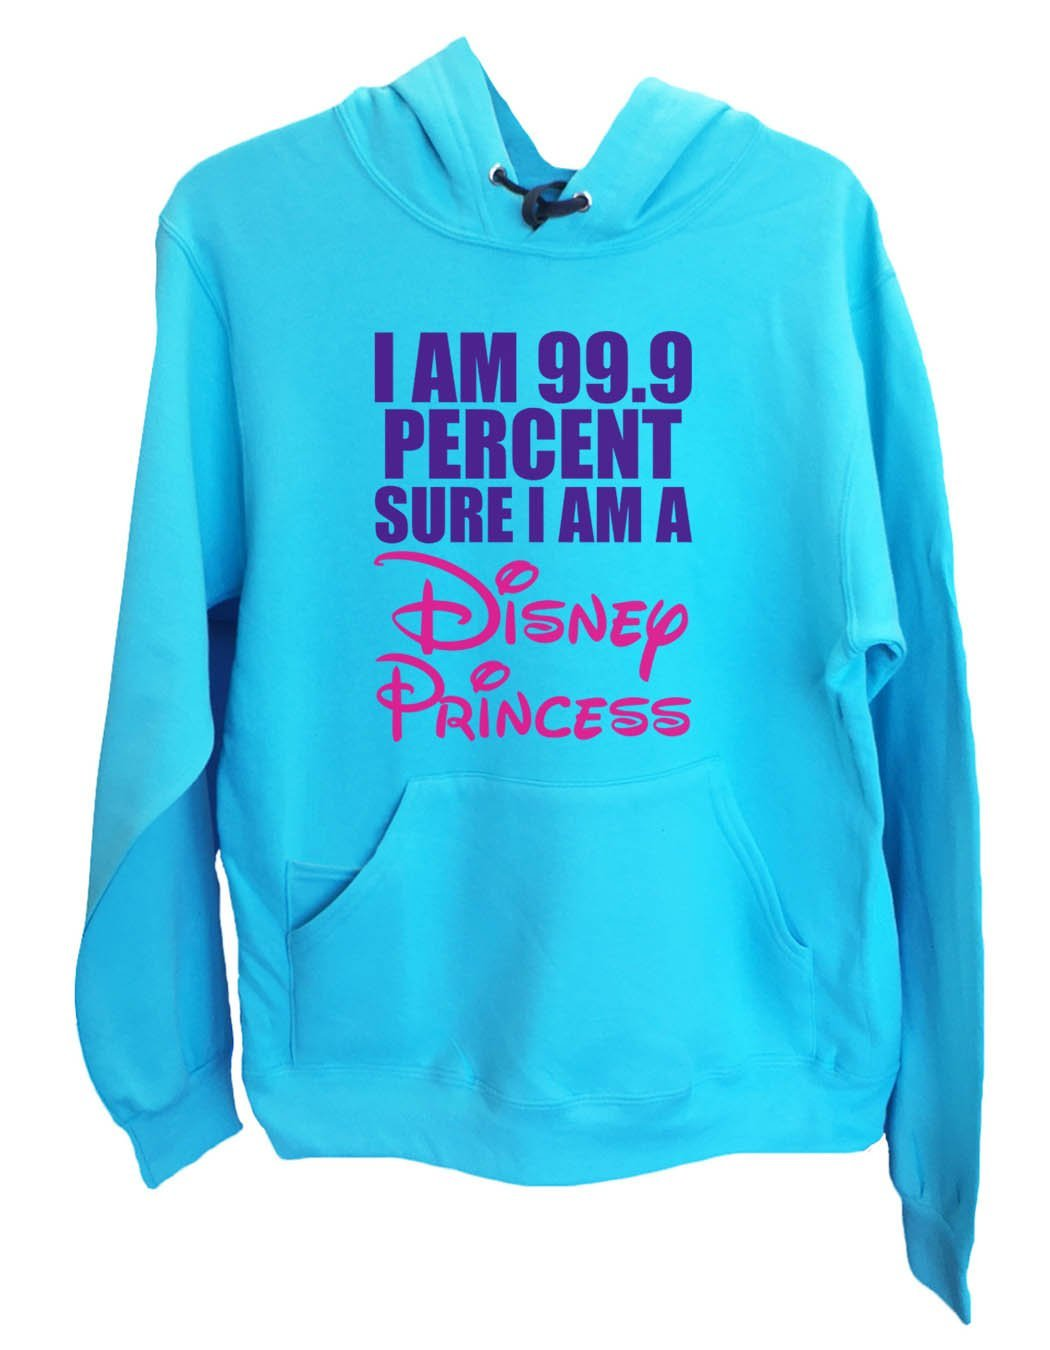 UNISEX HOODIE - I am 99.9 percent sure I am a disney princess - FUNNY MENS AND WOMENS HOODED SWEATSHIRTS - 1631 Funny Shirt